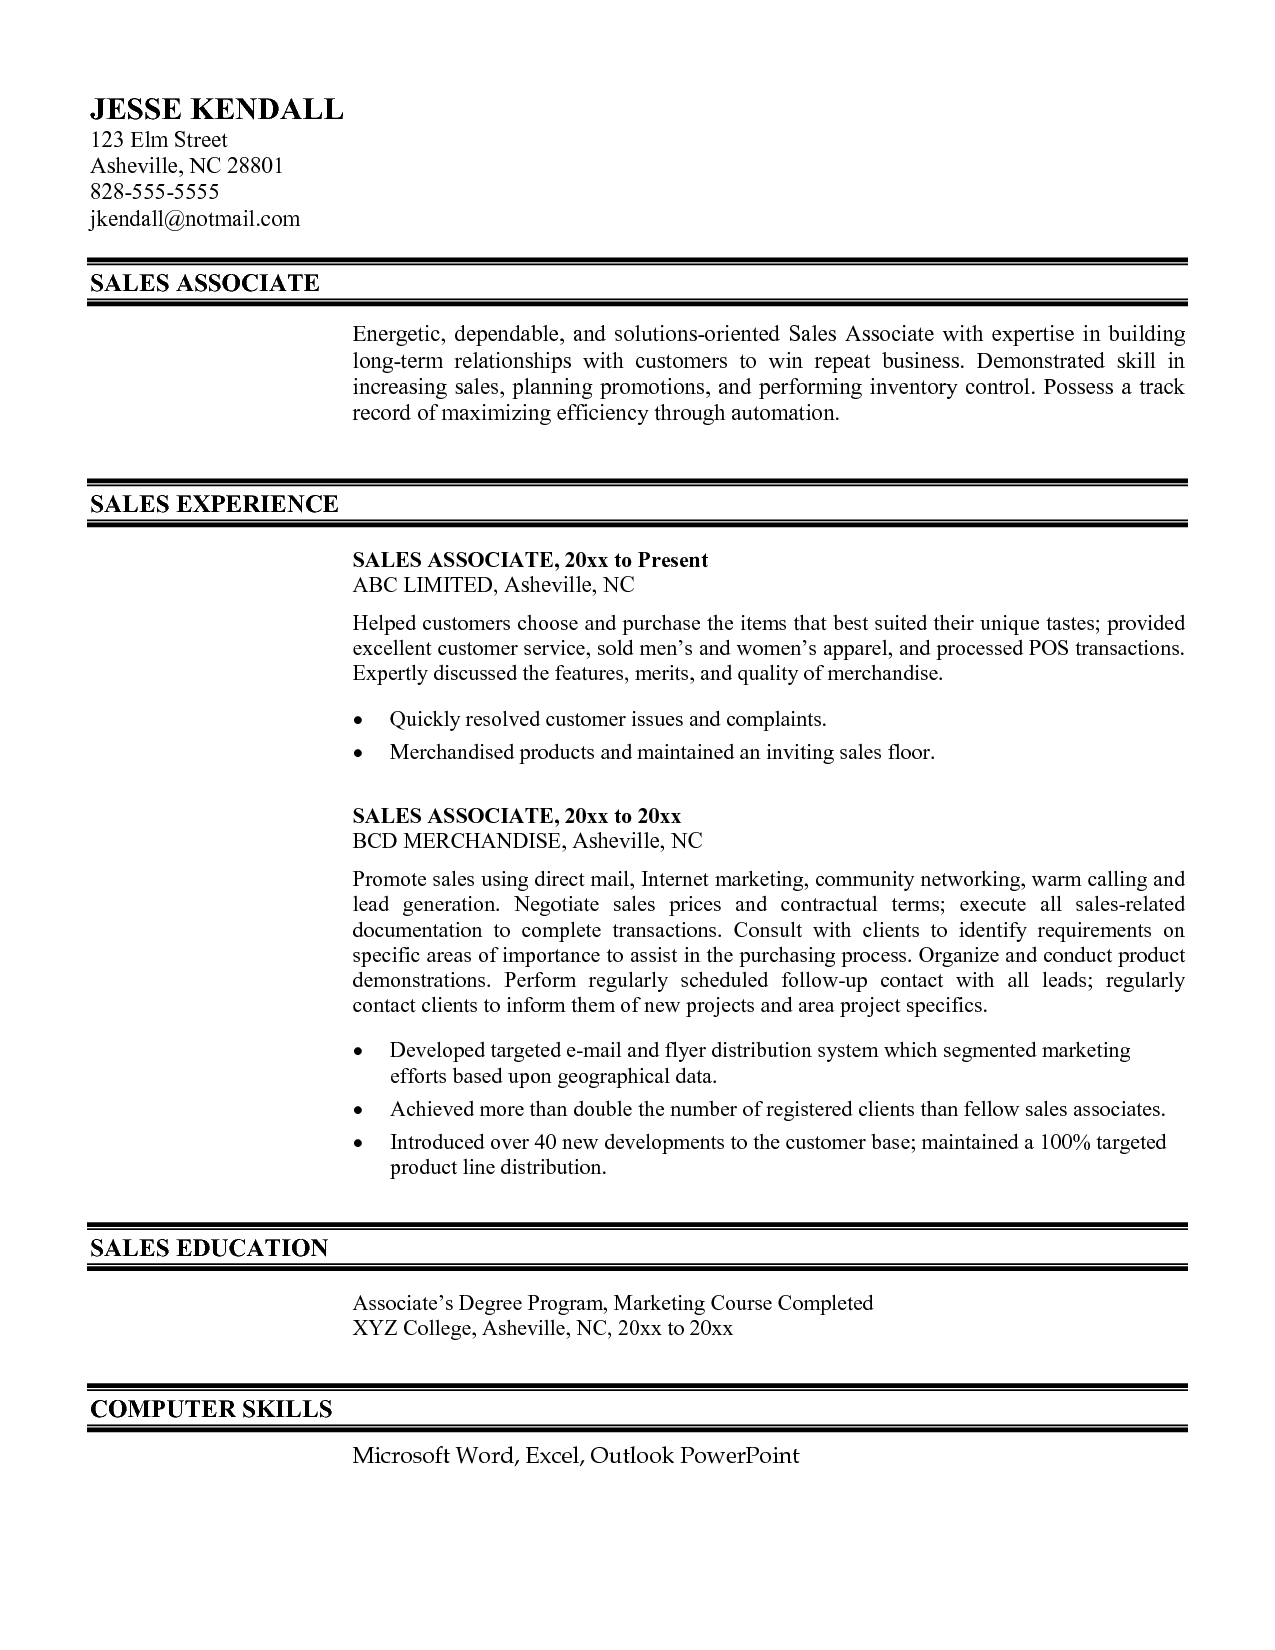 Sales Associate Resume Example http//www.resumecareer